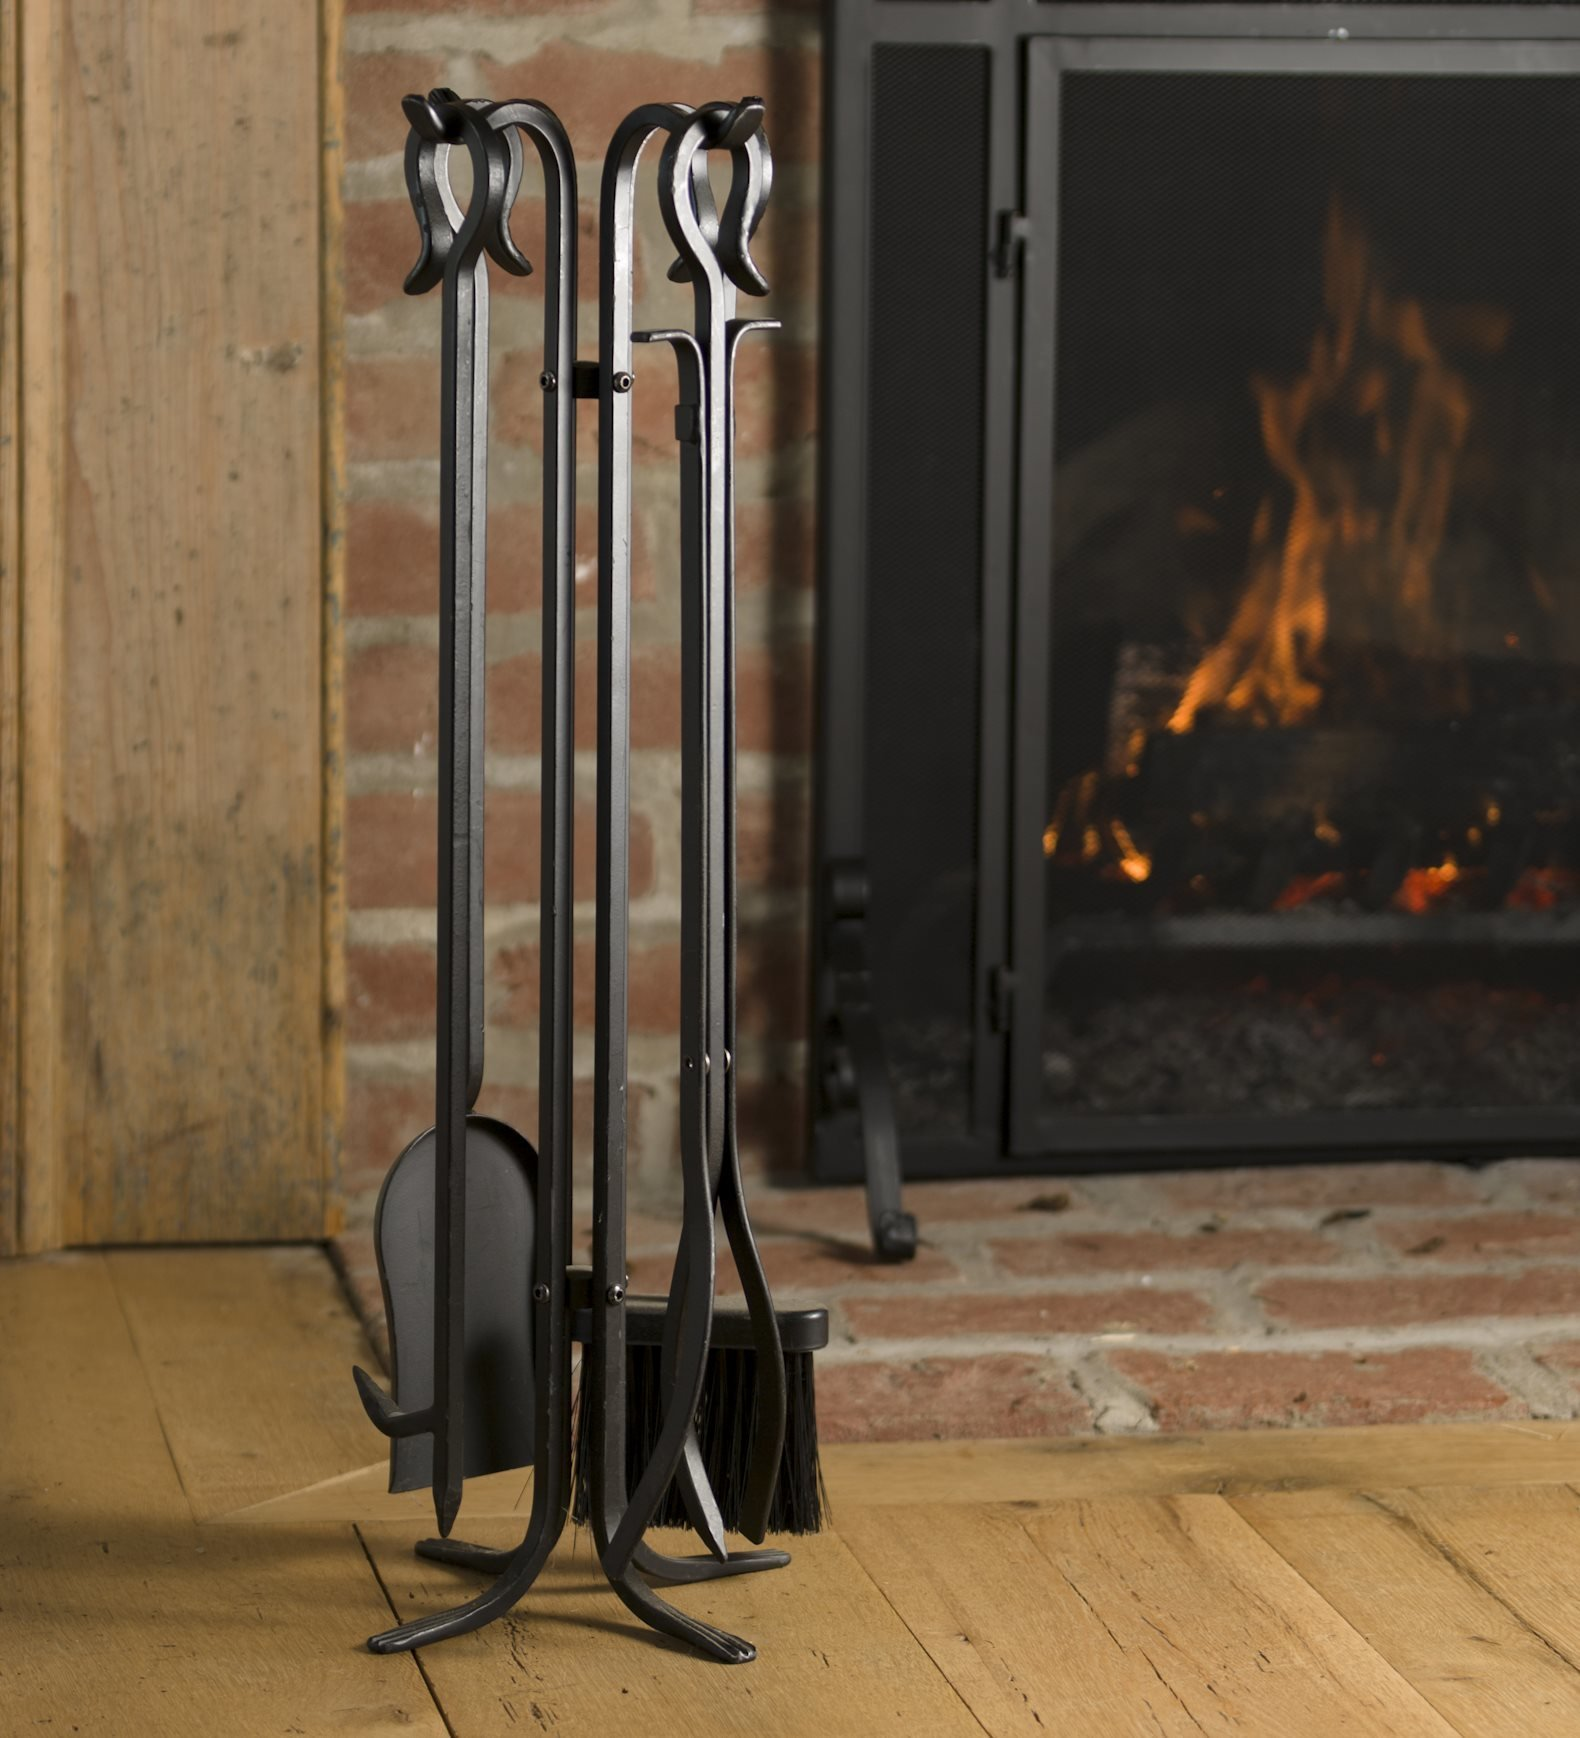 Plow & Hearth 5 Piece Hand Forged Iron Fireplace Tool Set with Poker, Tongs, Shovel, Broom, and Stand 7-in Diam. x 27.5 H Black by Plow & Hearth